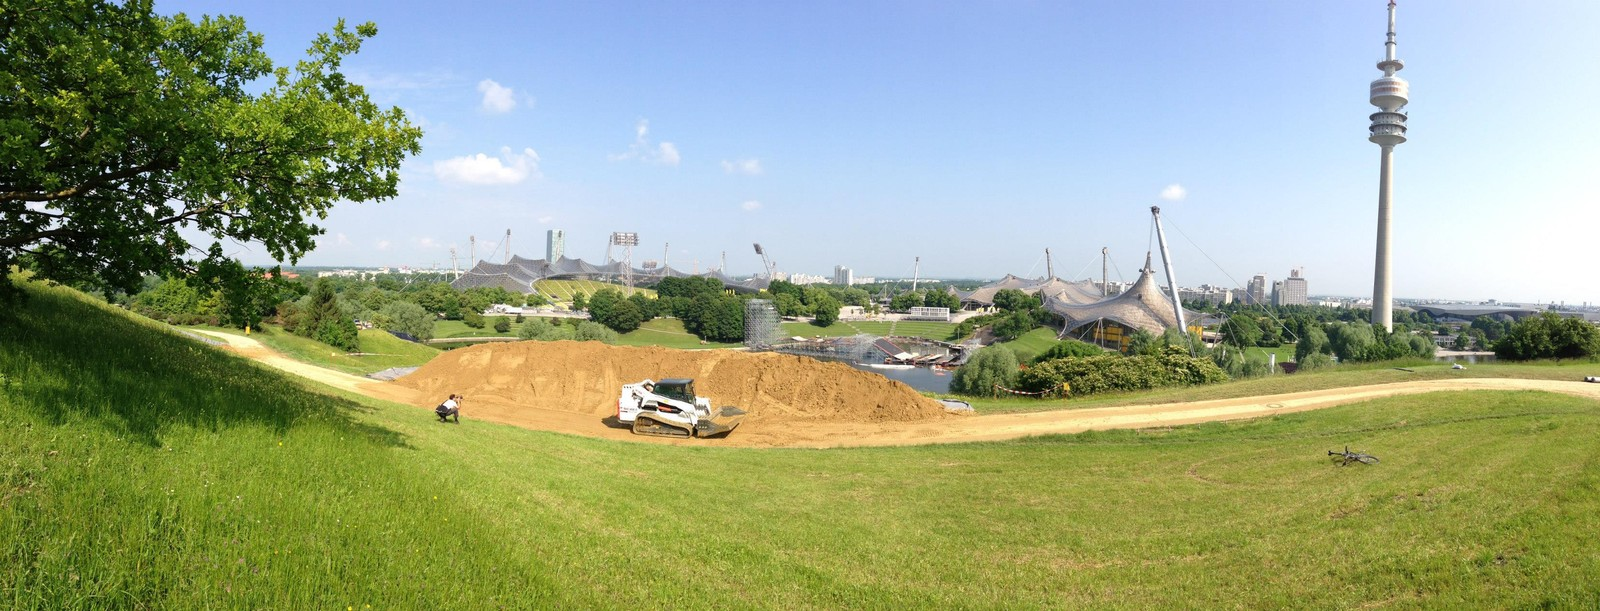 X-Games Munich Slopestyle Course Build - All Things X-Games Munich Slopestyle - Mountain Biking Pictures - Vital MTB